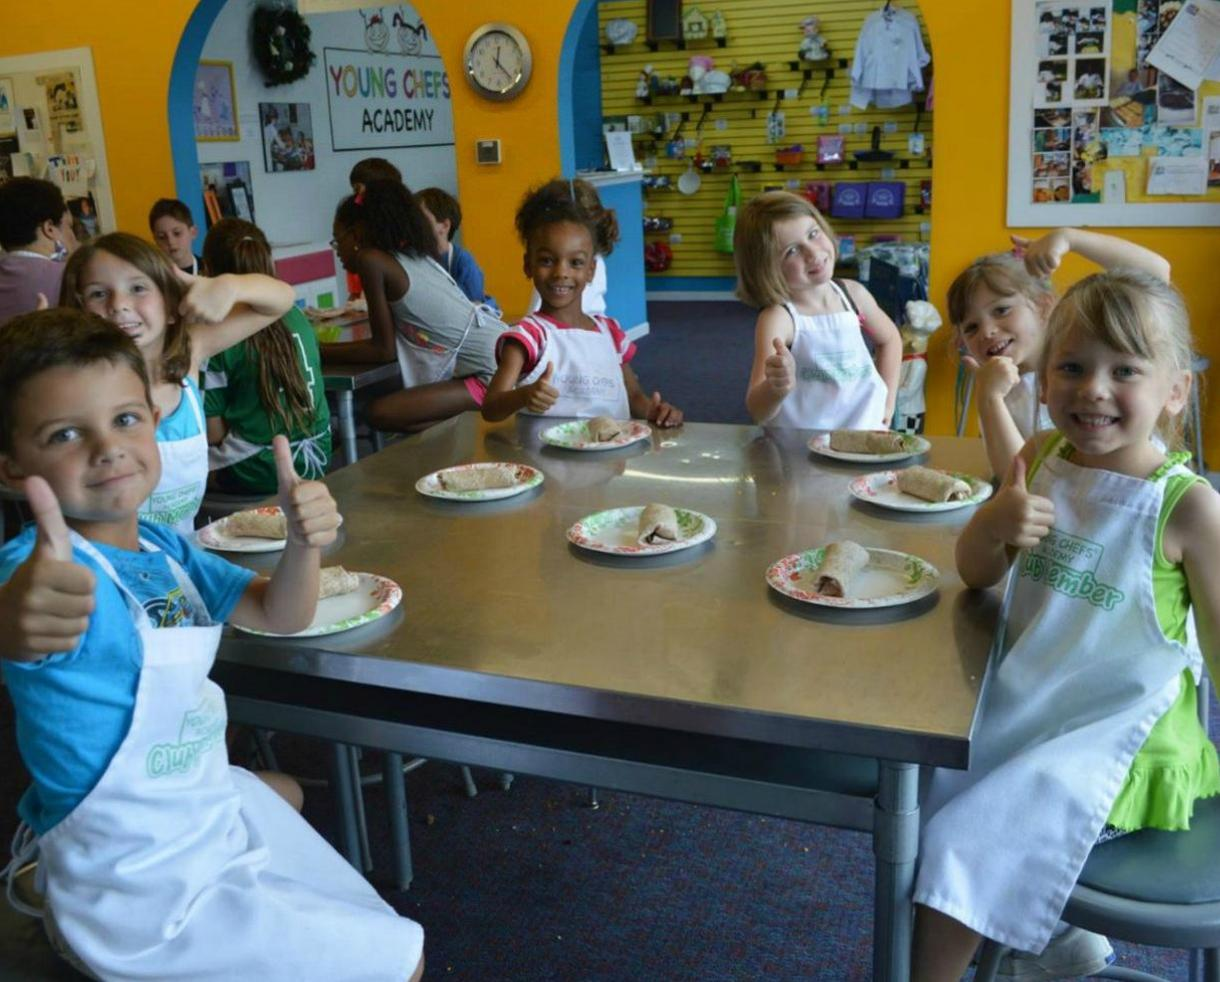 Young Chefs® Academy Drop-In Cooking Class